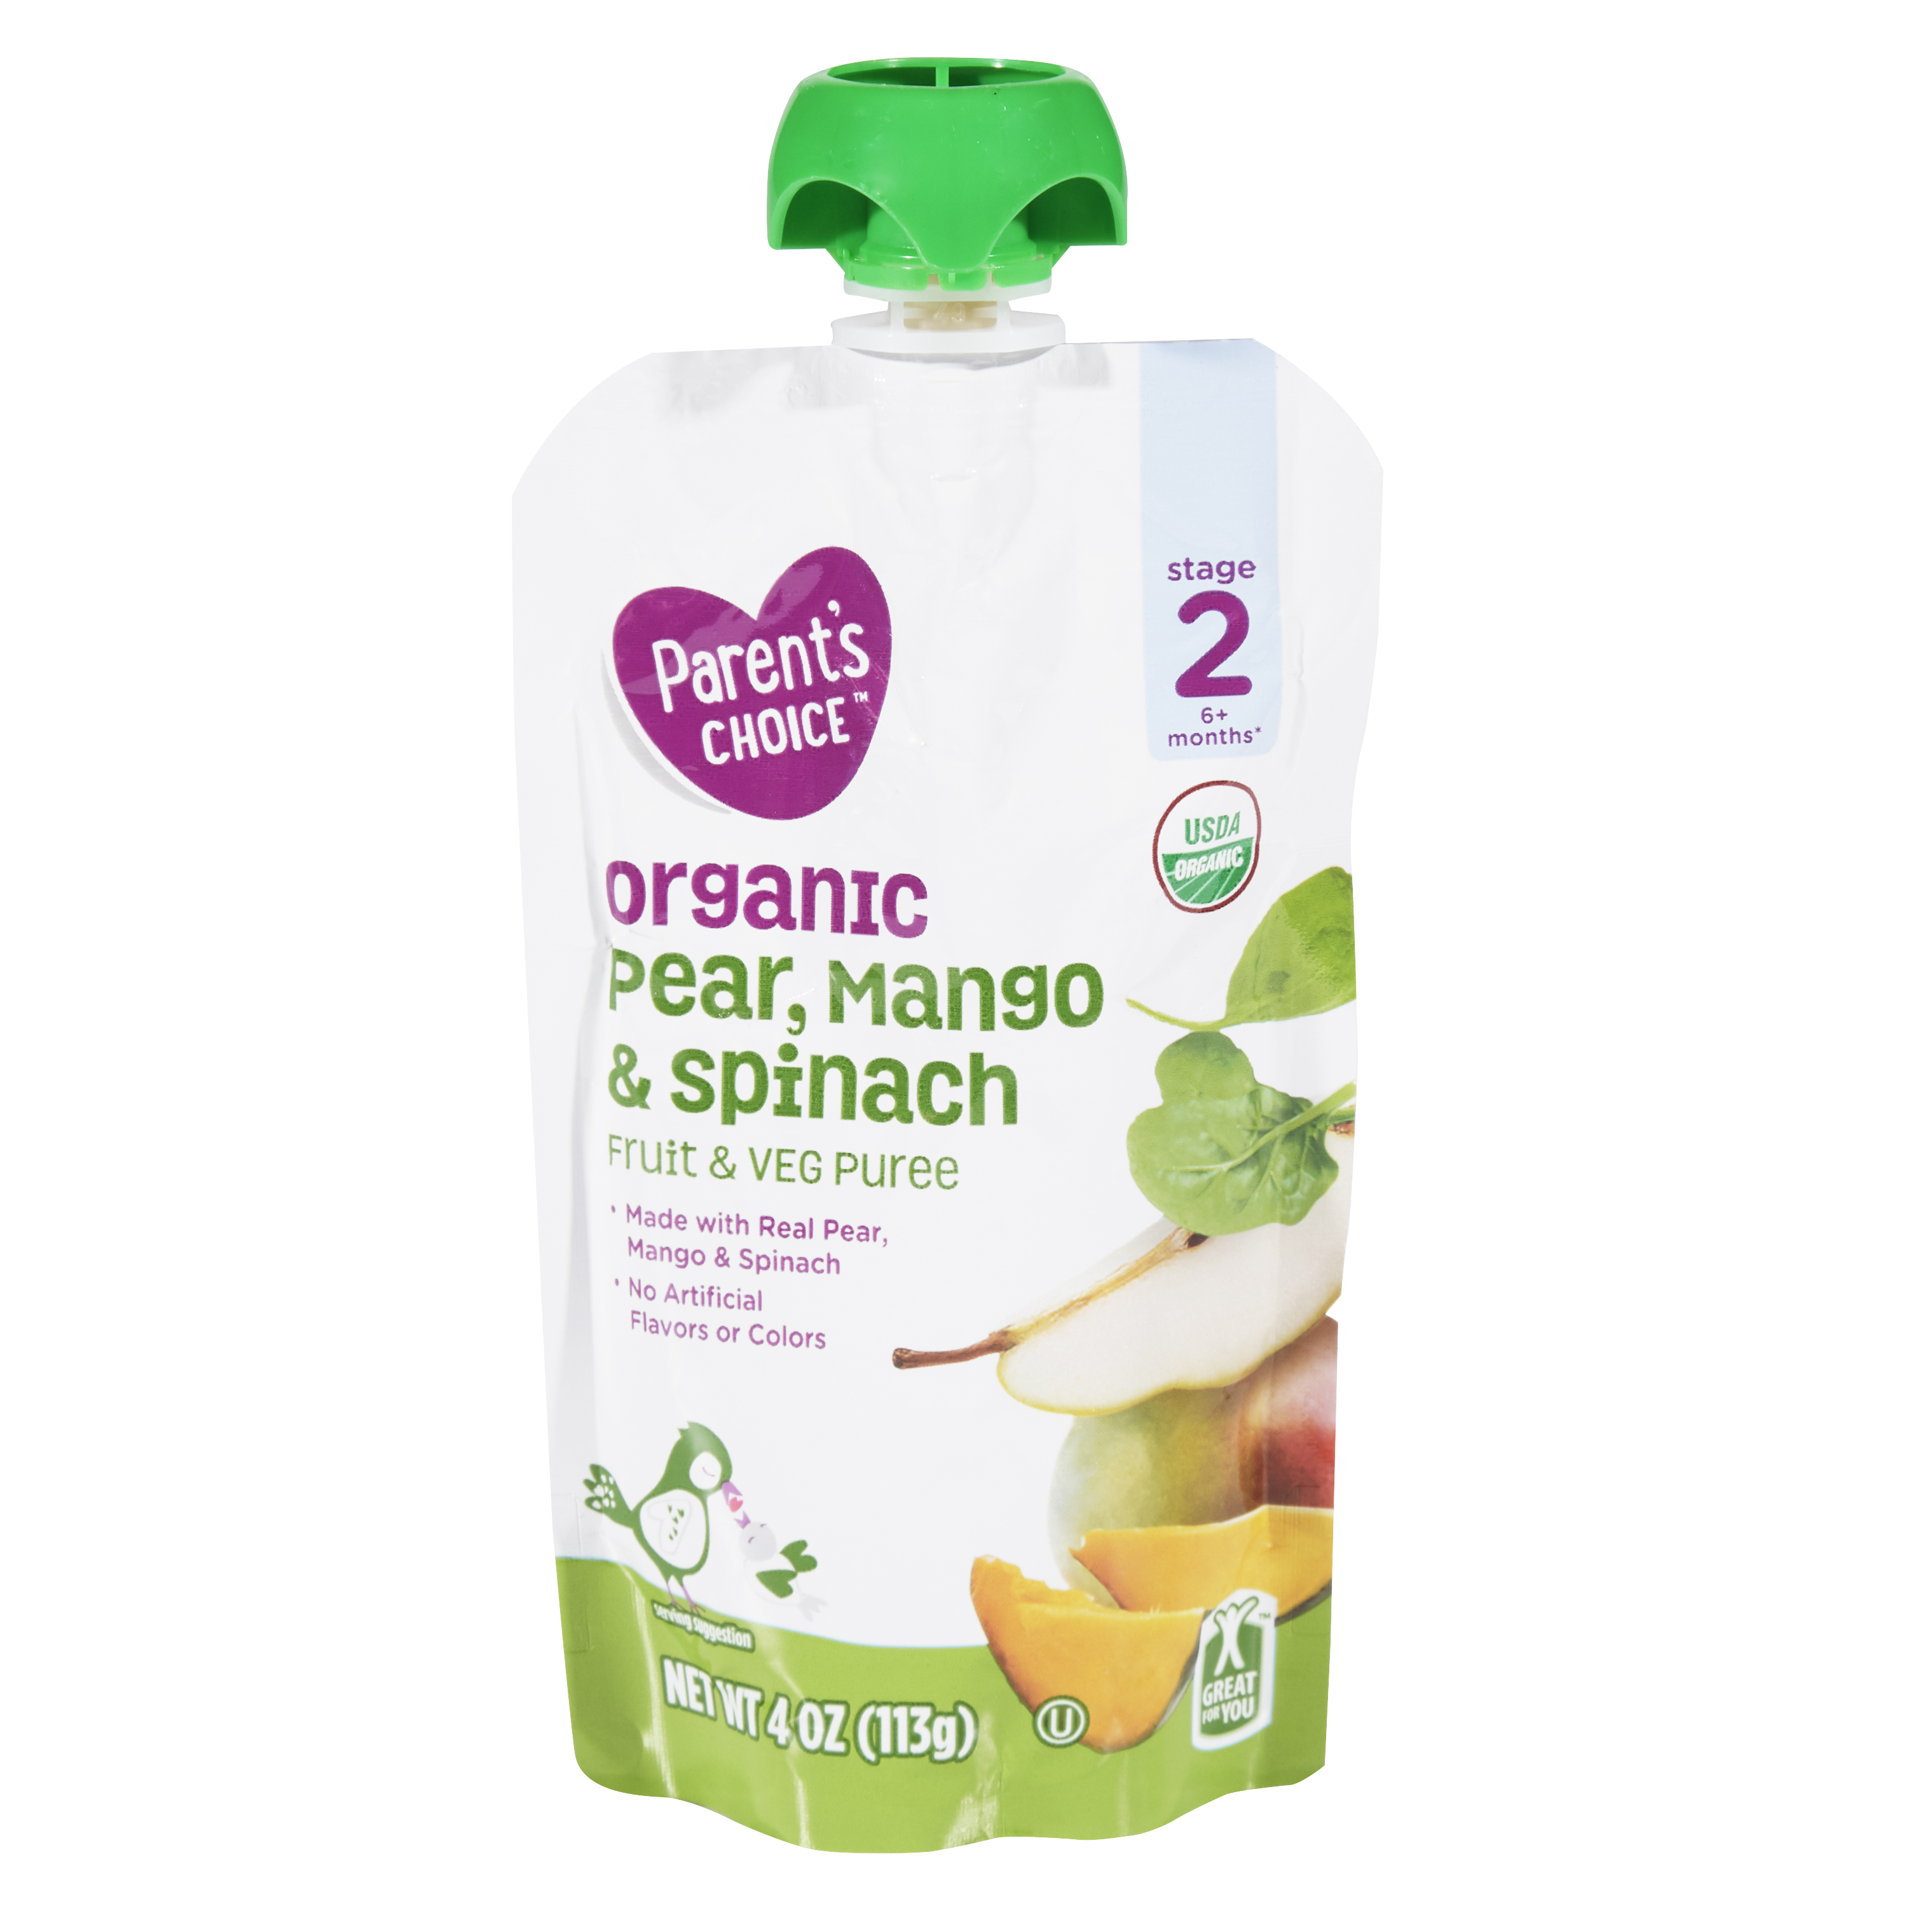 Parent's Choice Organic Pear, Mango & Spinach, Stage 2, 4 oz Pouch